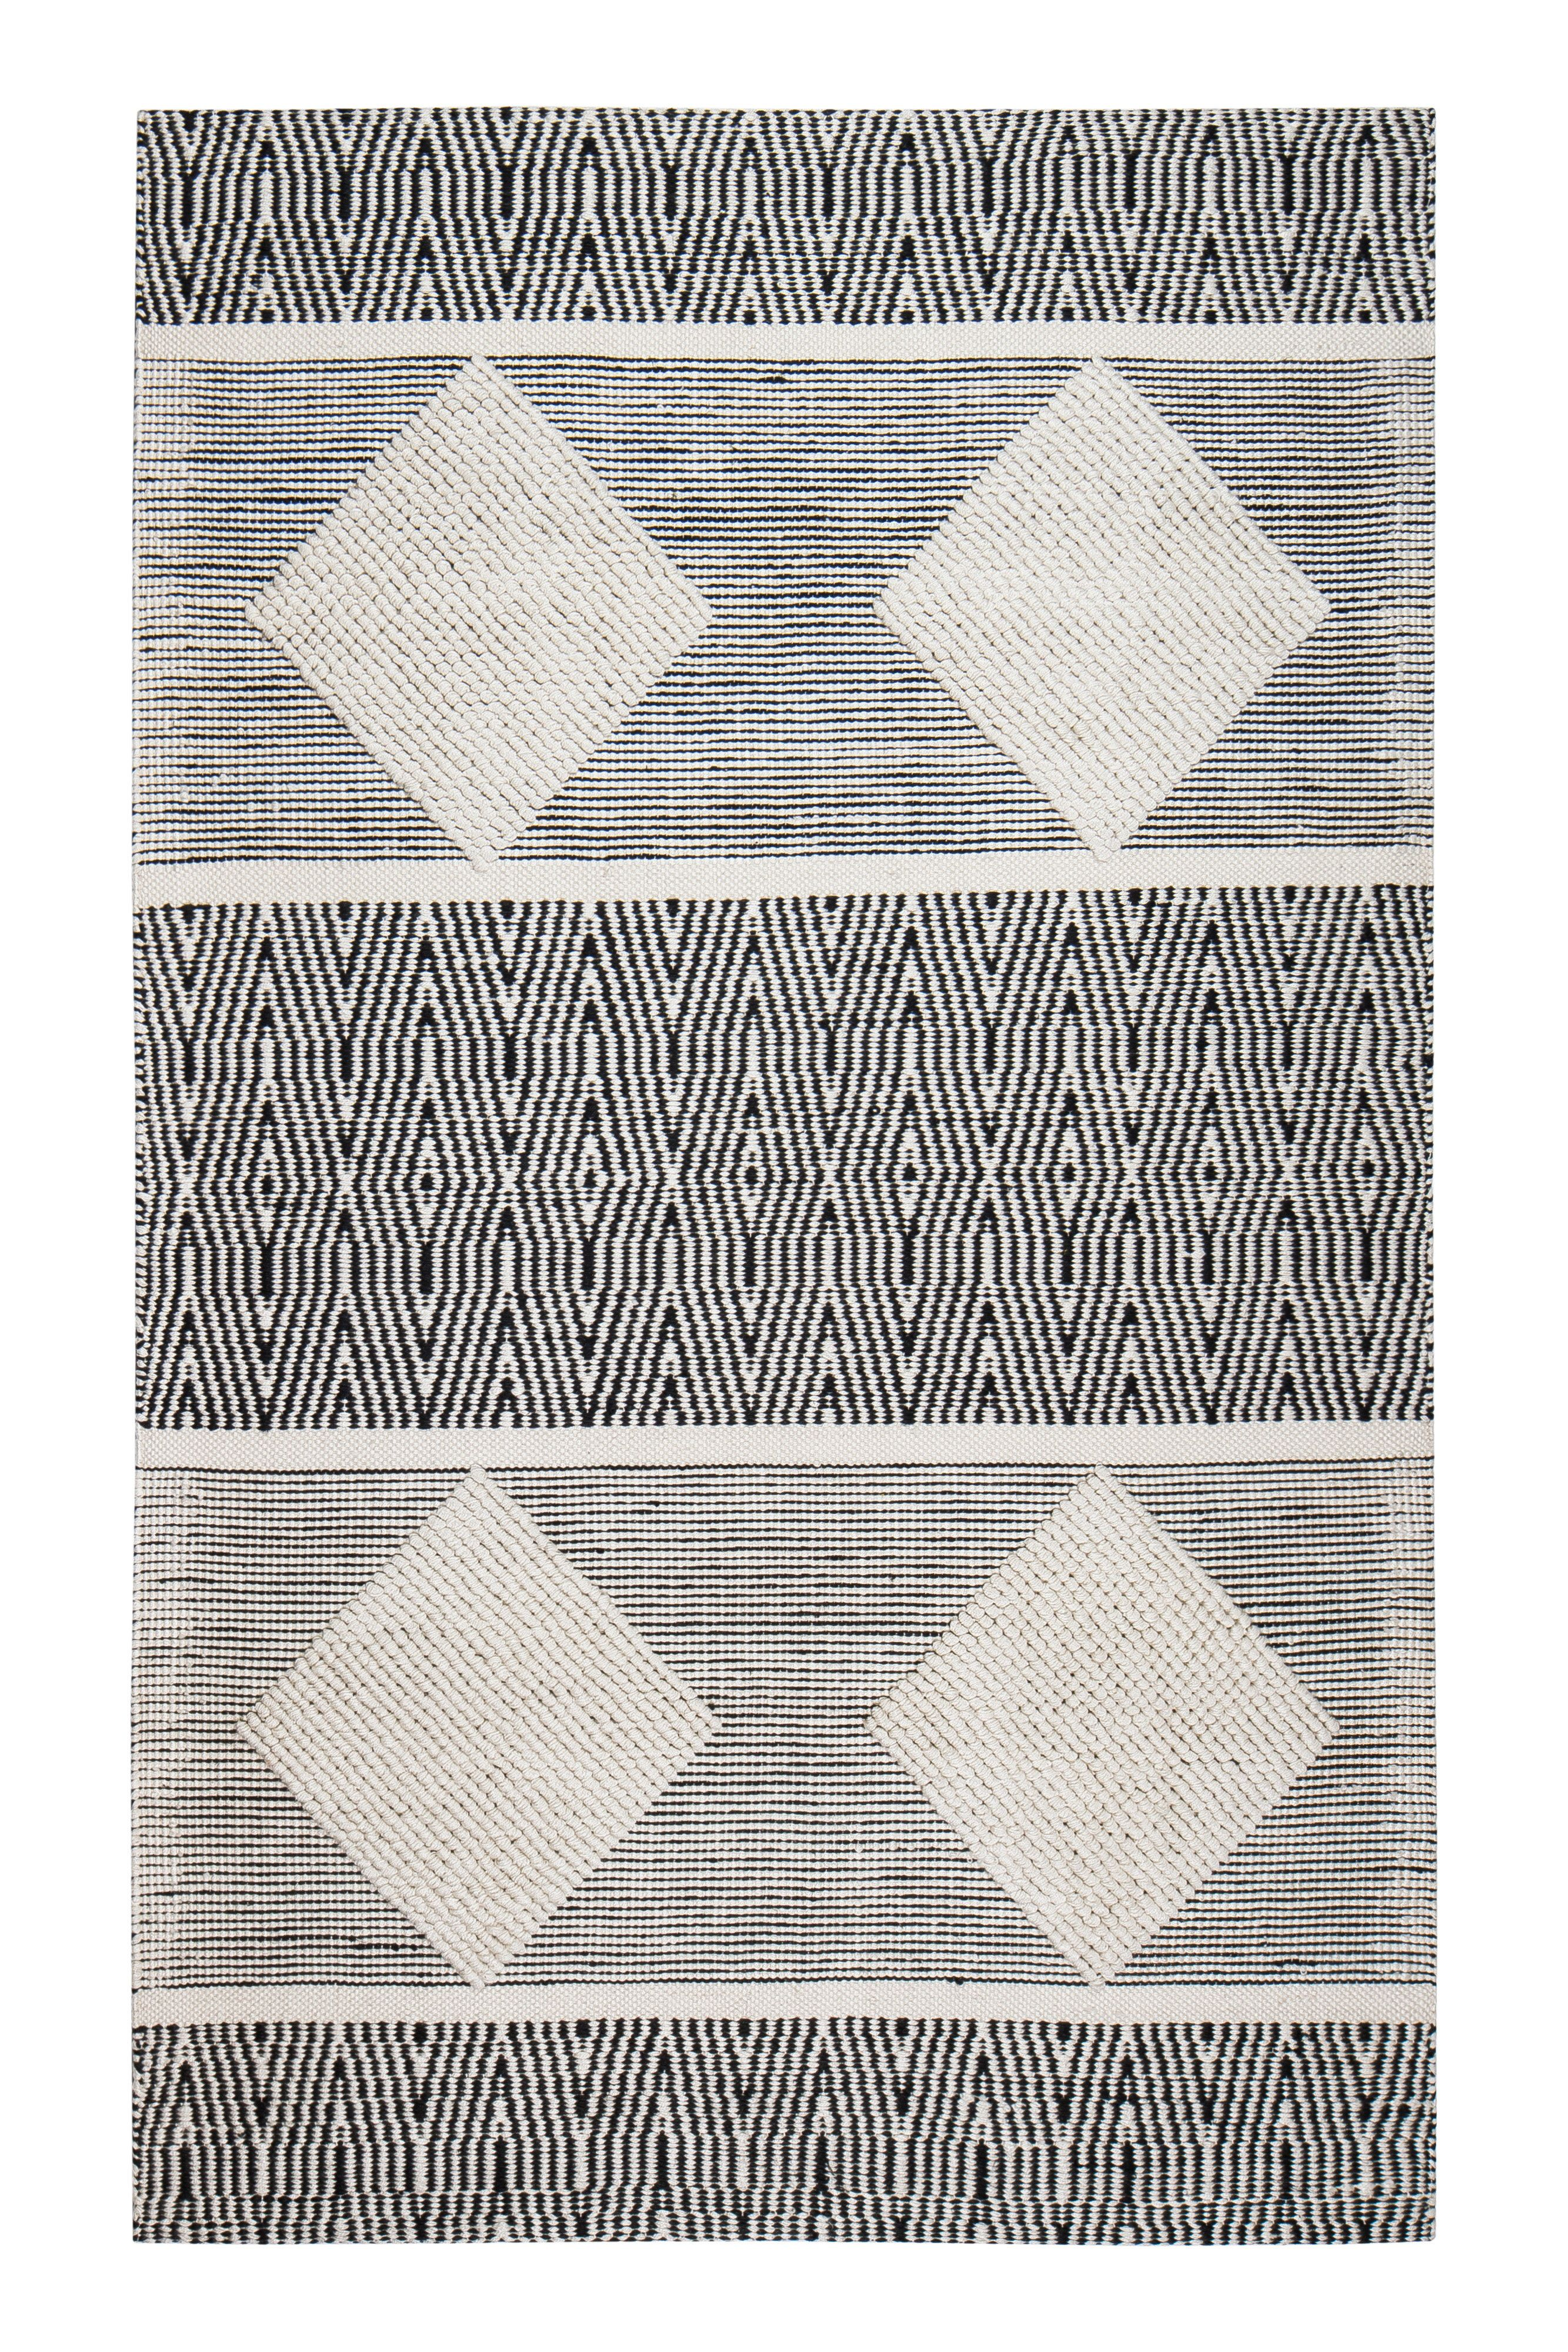 Hand Woven Black White Area Rug Tribal Area Rug White Area Rug